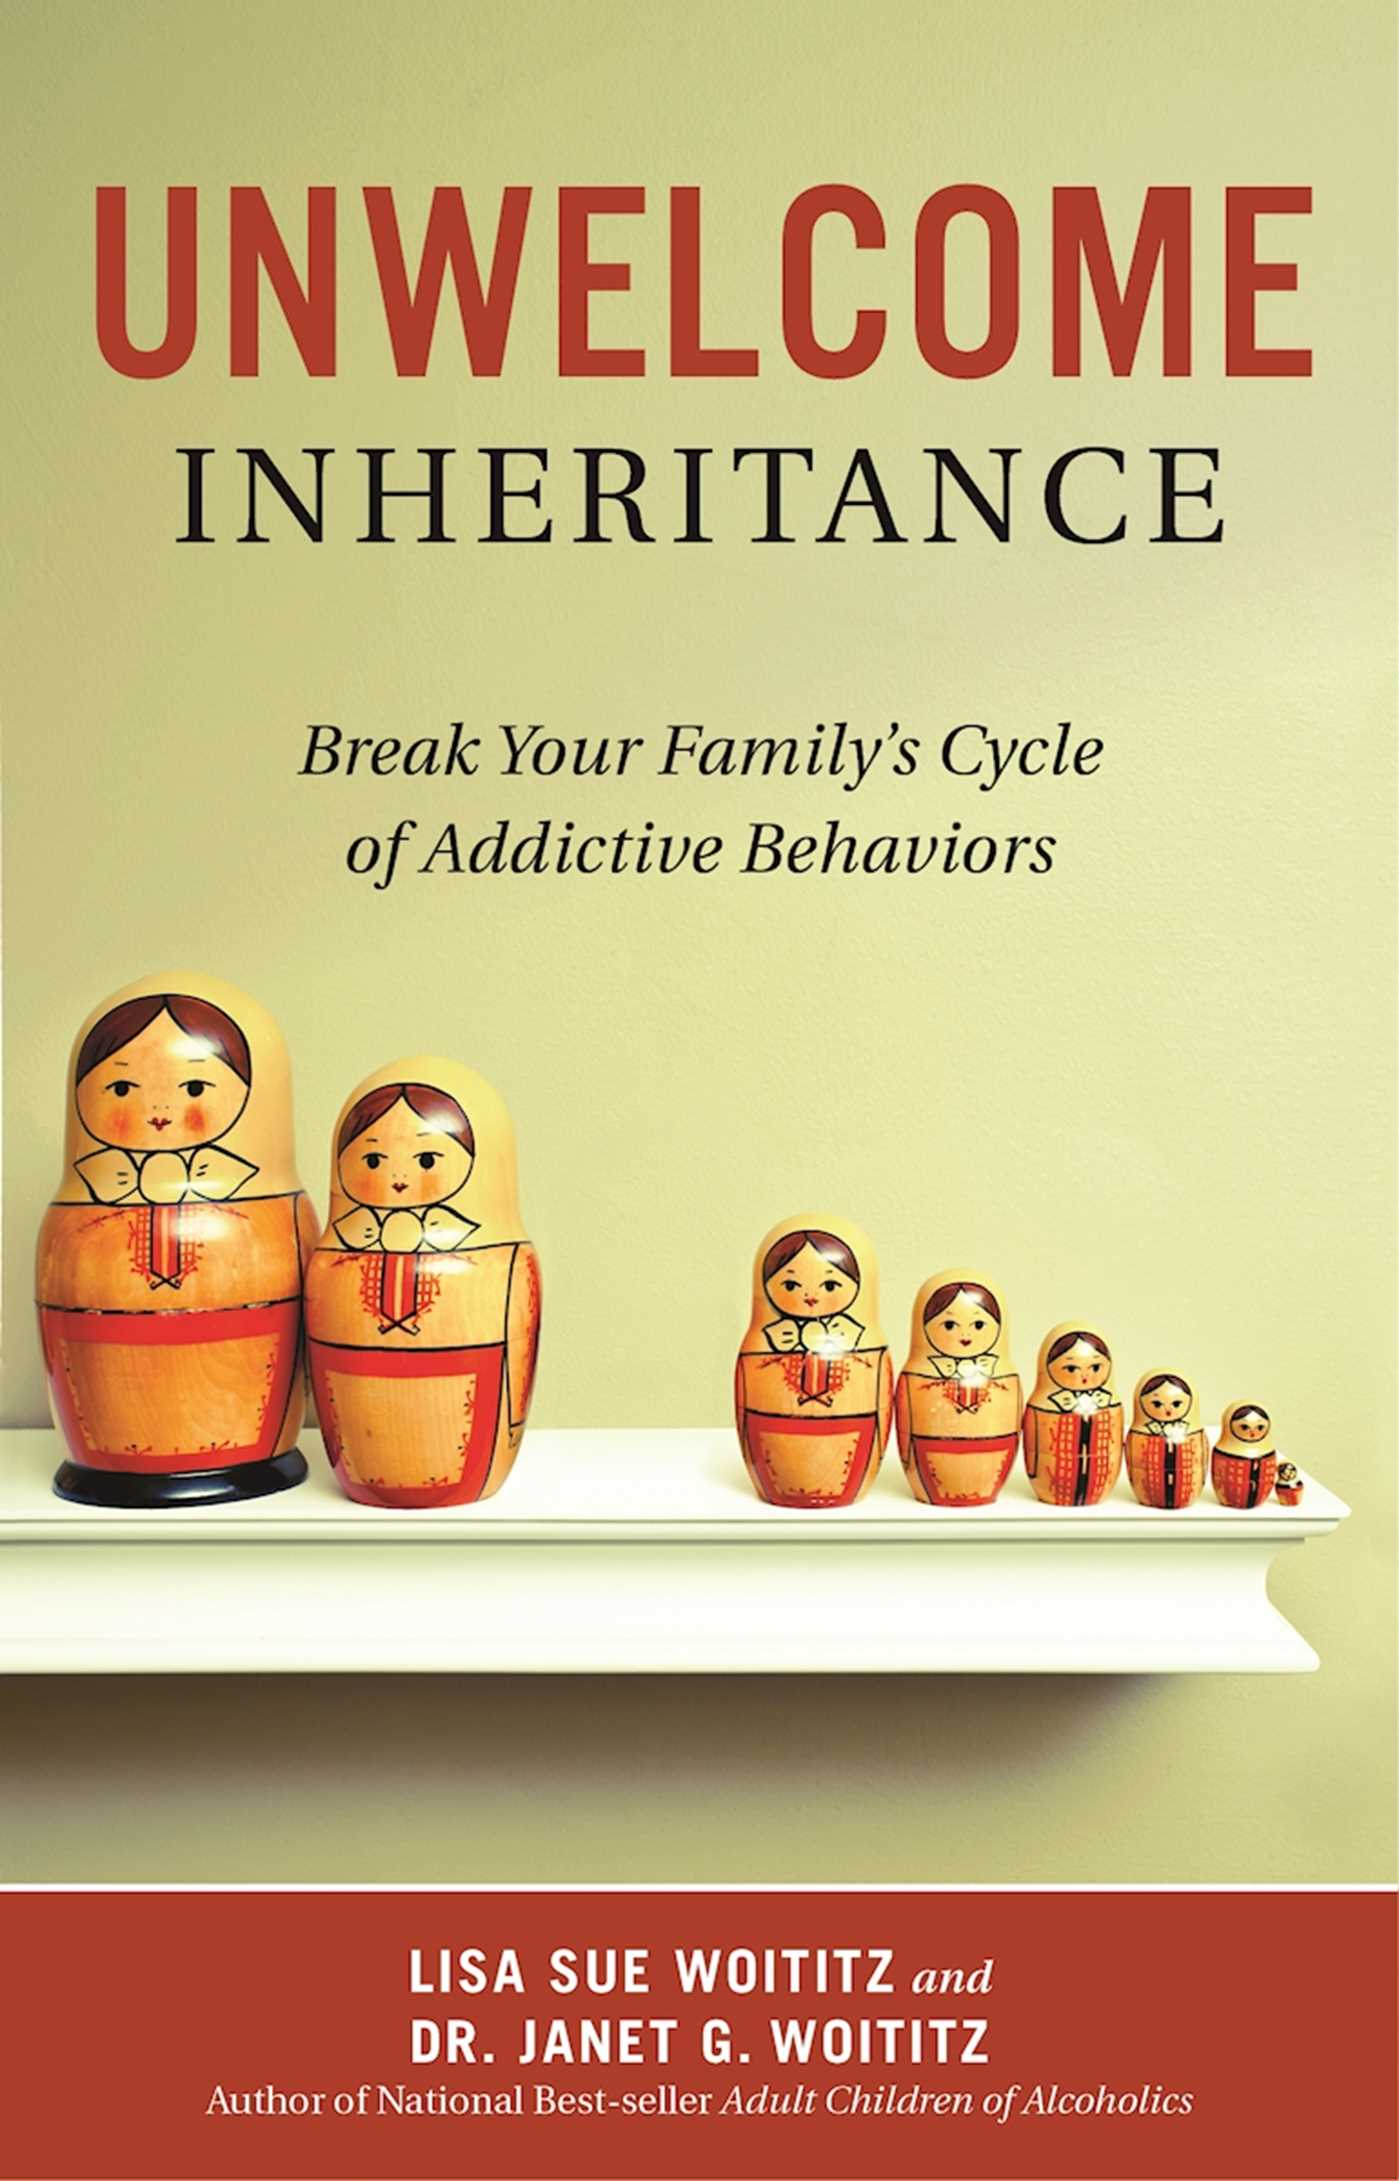 Unwelcome Inheritance Break Your Family's Cycle of Addictive Behaviors By Lisa Sue Woititz and Dr. Janet G. Woititz